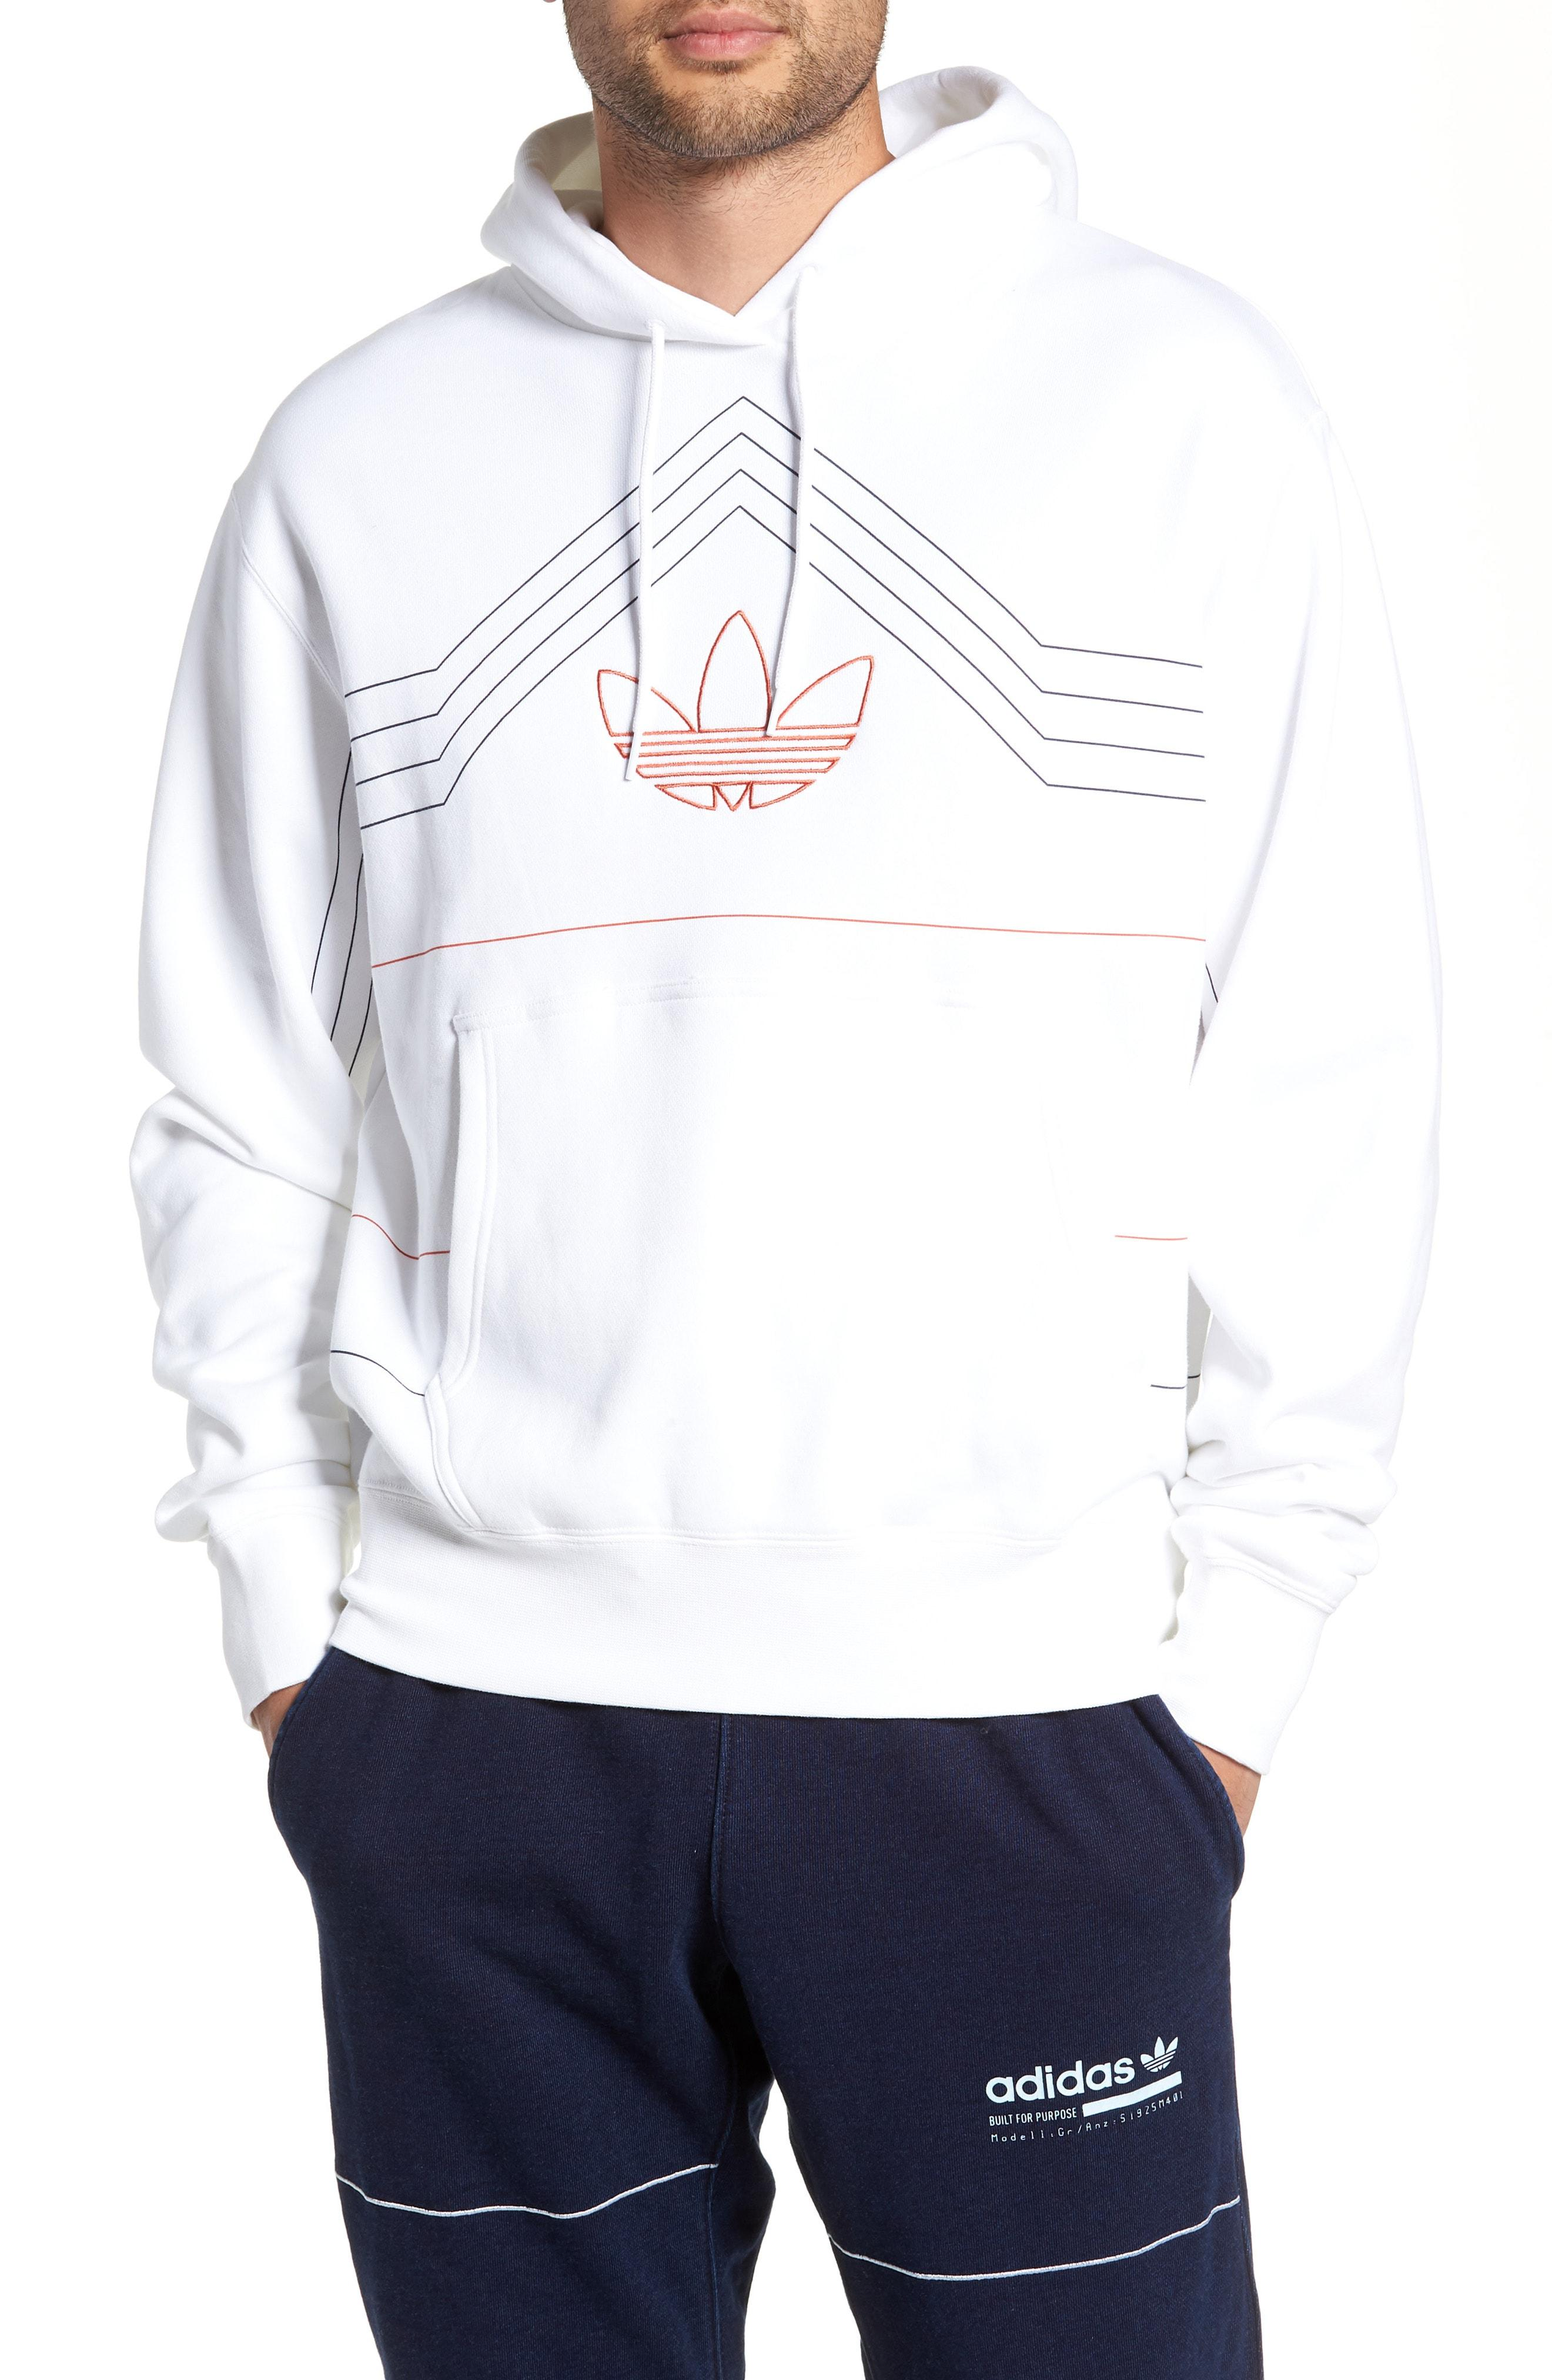 74a4df9a2 Lyst - adidas Originals Ewing Hooded Sweatshirt in White for Men